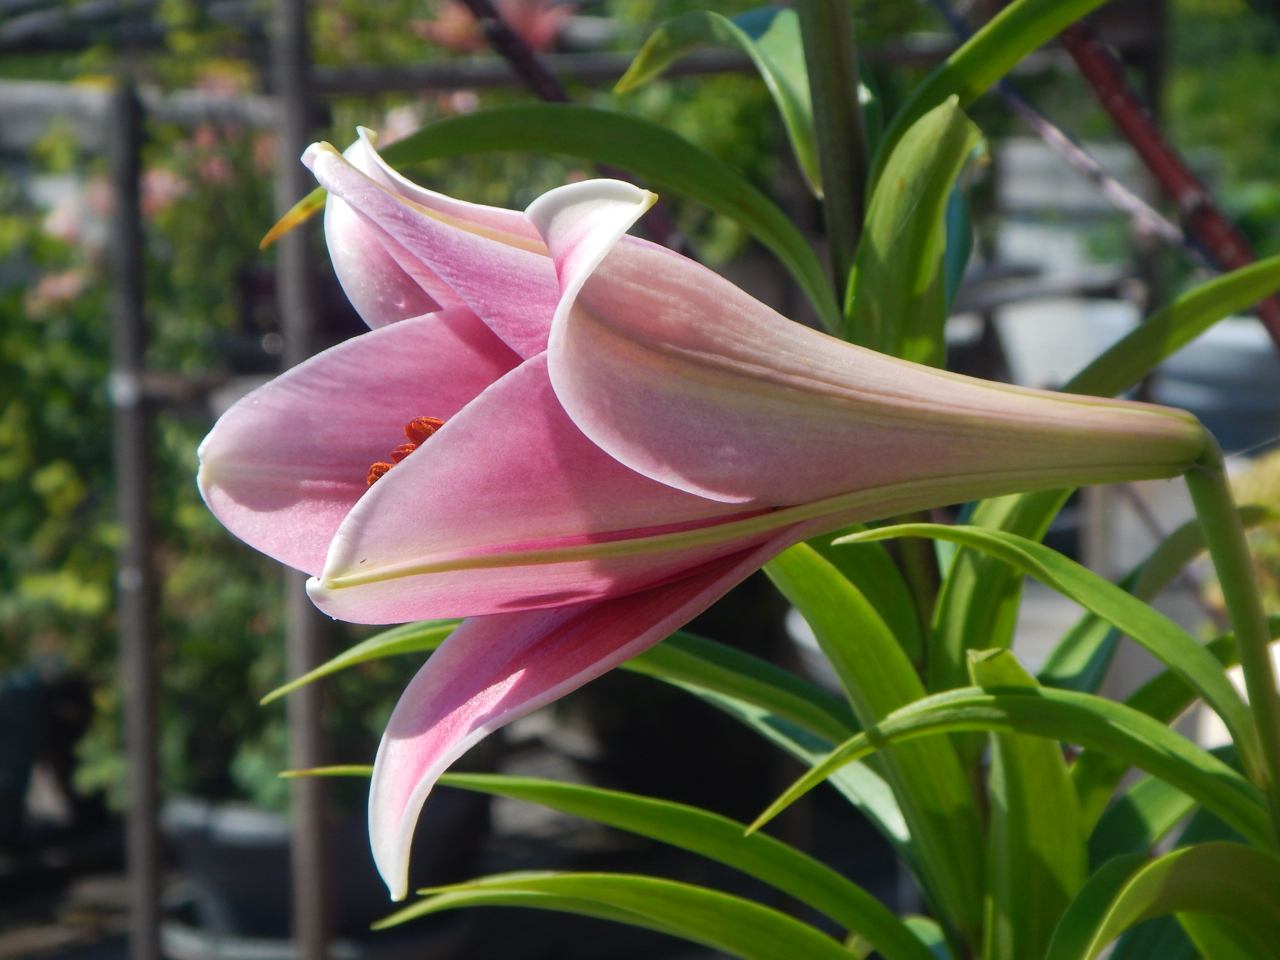 Lily Award   2018 Mossies  Triumphiator Lily ( Lilium  LO 'Triumphiator')  Triumphiator is a LO lily, a cross between Longiflorum and Oriental types. The Oriental parentage imparts hardiness and a perfume scent, while the Longiflorum genes add pastels and flower shape. LO lilies are easy to grow in ground or container. Triumphiator holds its perfumy pink trumpets at eye-level and looks you in the face. The dark pink interior softens to ivory-white along the margins. These strong growers are perfect for bouquets.